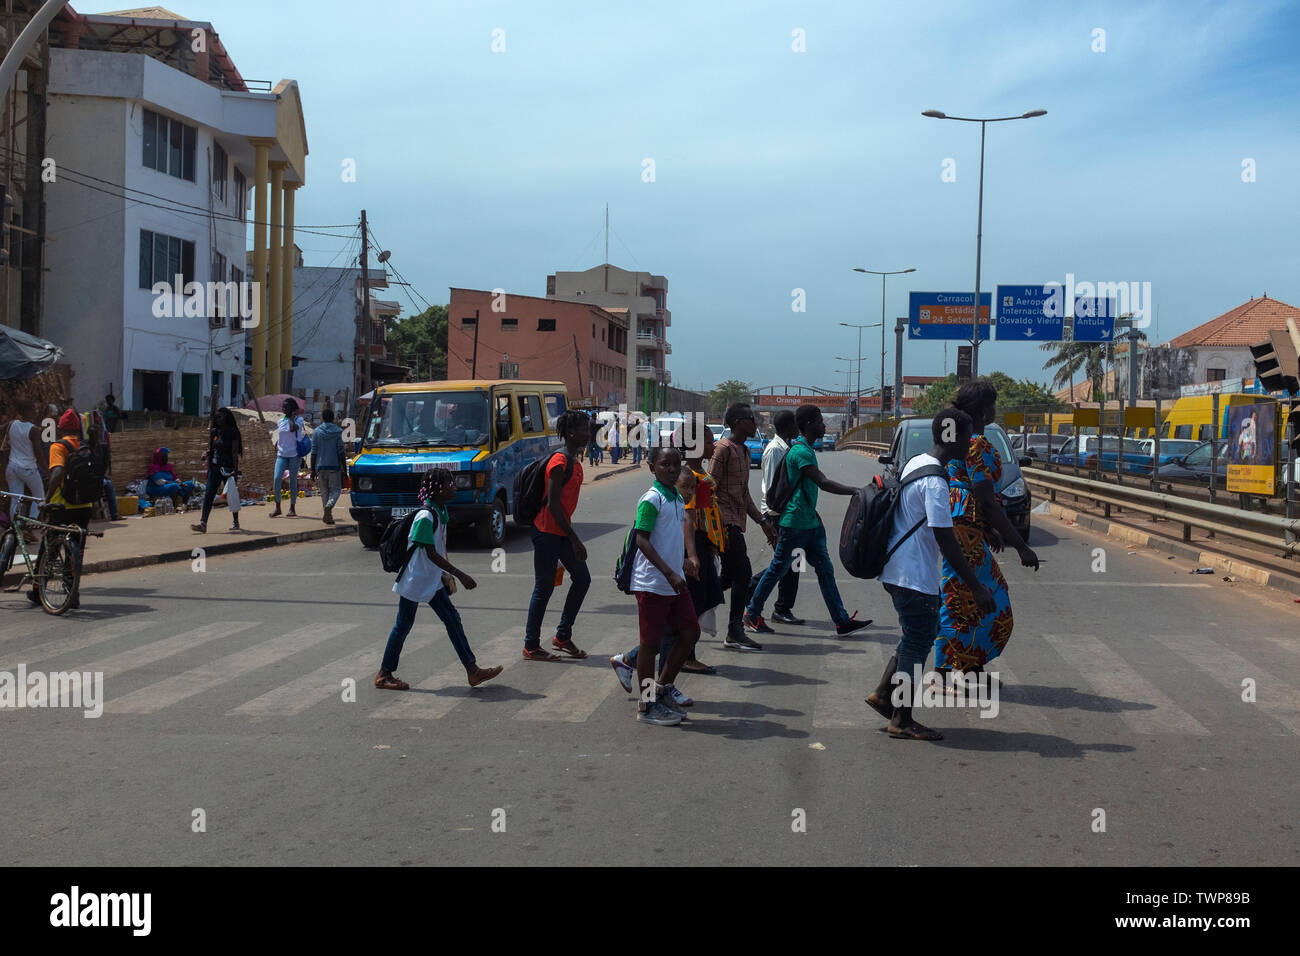 Bissau, Republic of Guinea-Bissau - February 8, 2018: Street scene in the city of Bissau with people crossing an avenue near the Bandim Market, in Gui - Stock Image